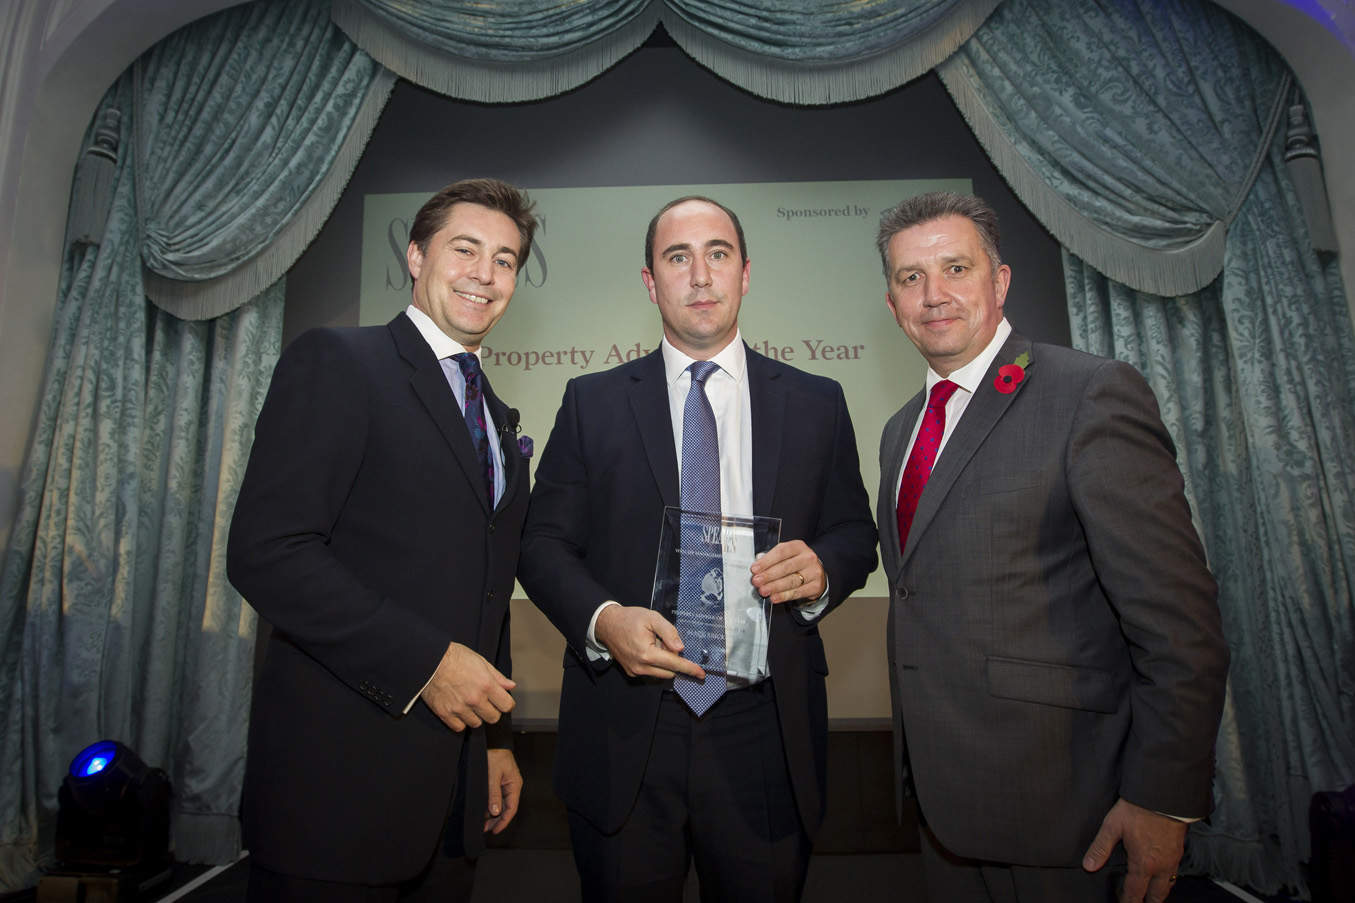 Property Adviser - host Ross Westgate, Caspar Harvard-Wells (Black Brick), Mark Gardner (sponsor, Hamilton Grand)